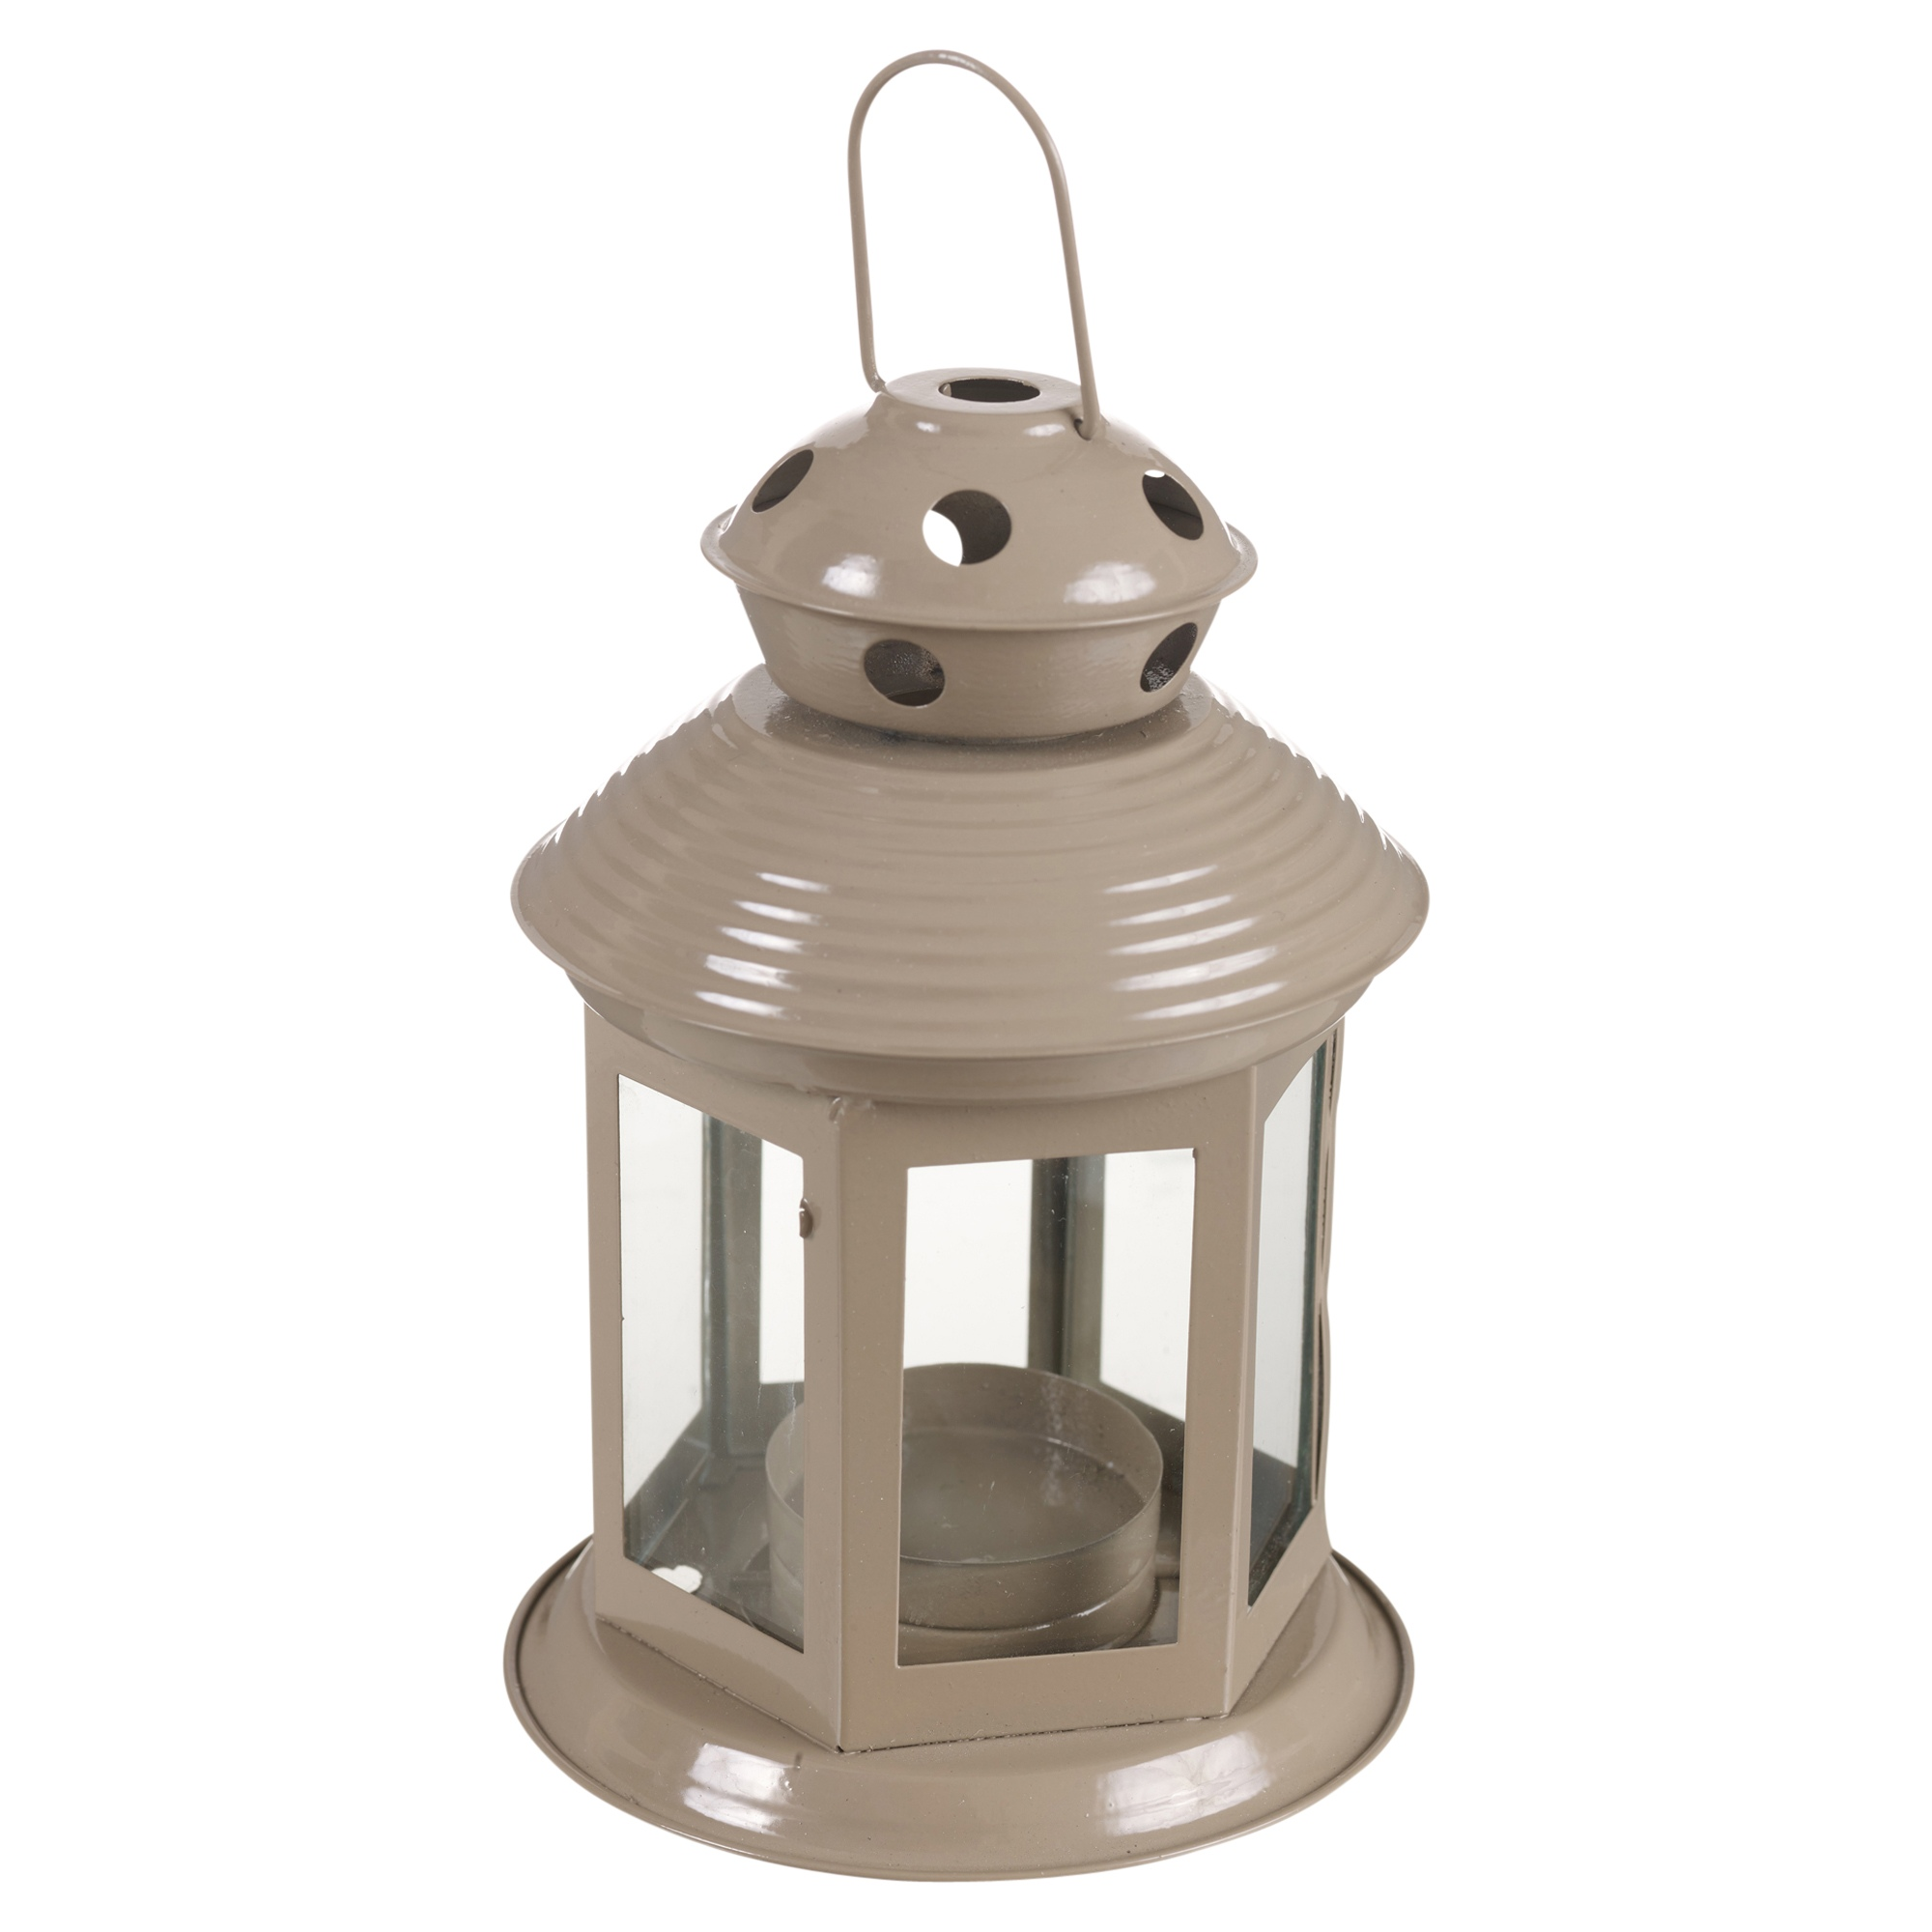 Tealight Lamp 5 Home Garden Portable Lantern Tealight Candle Lamp Holder